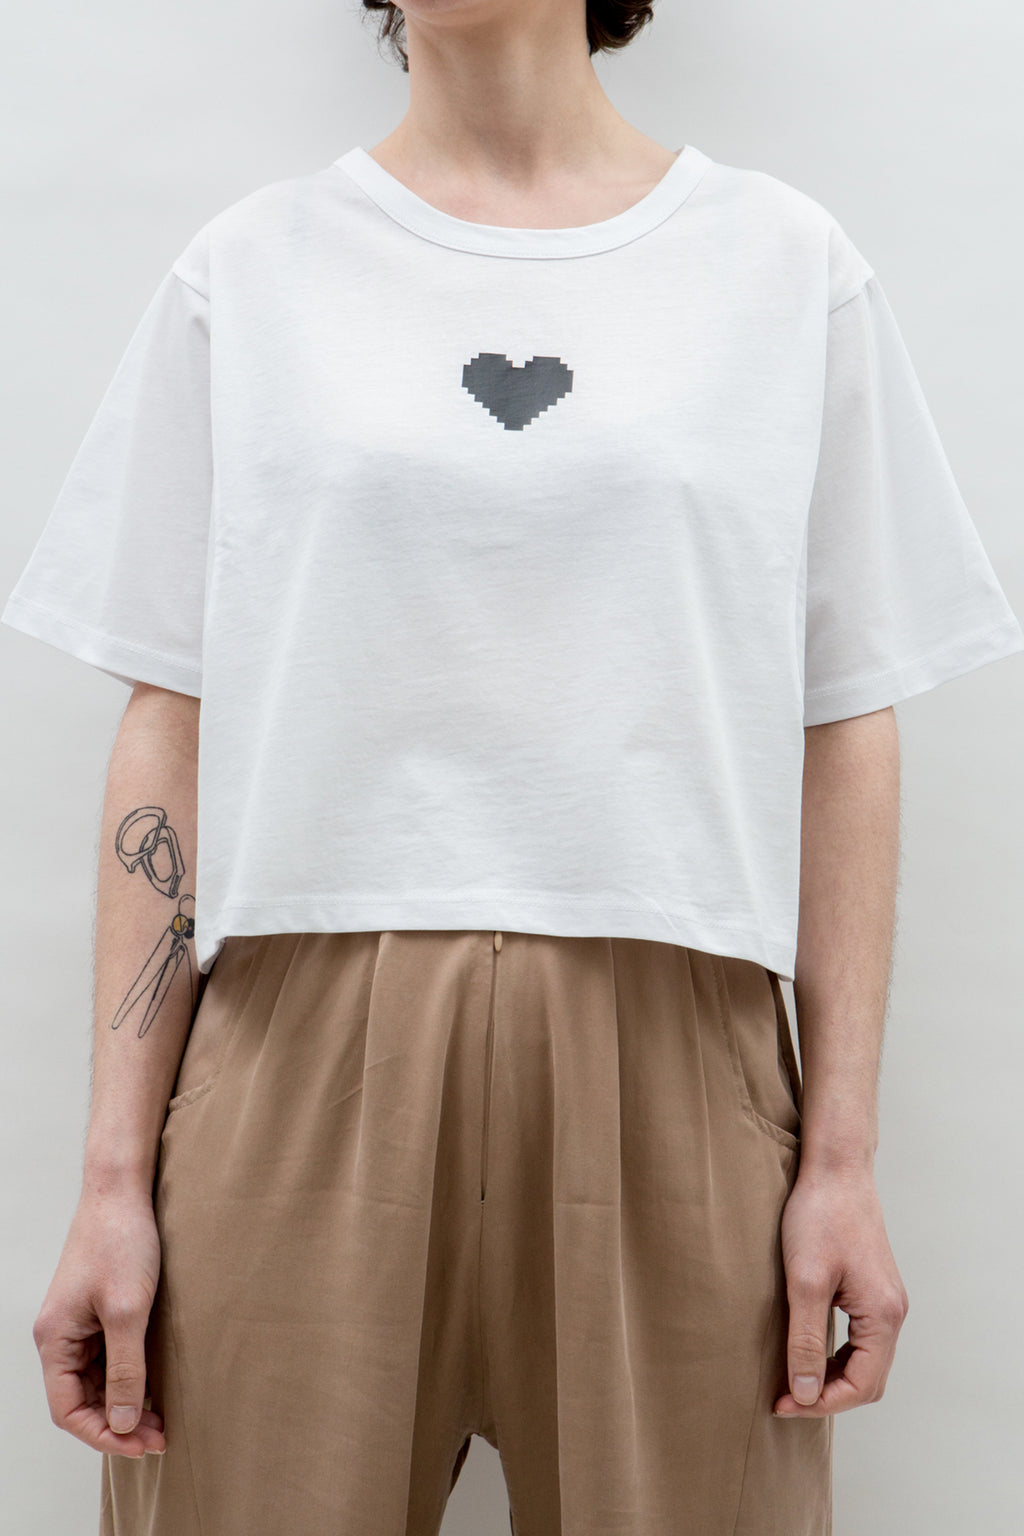 T-Shirt Cropped PixeLove Heart